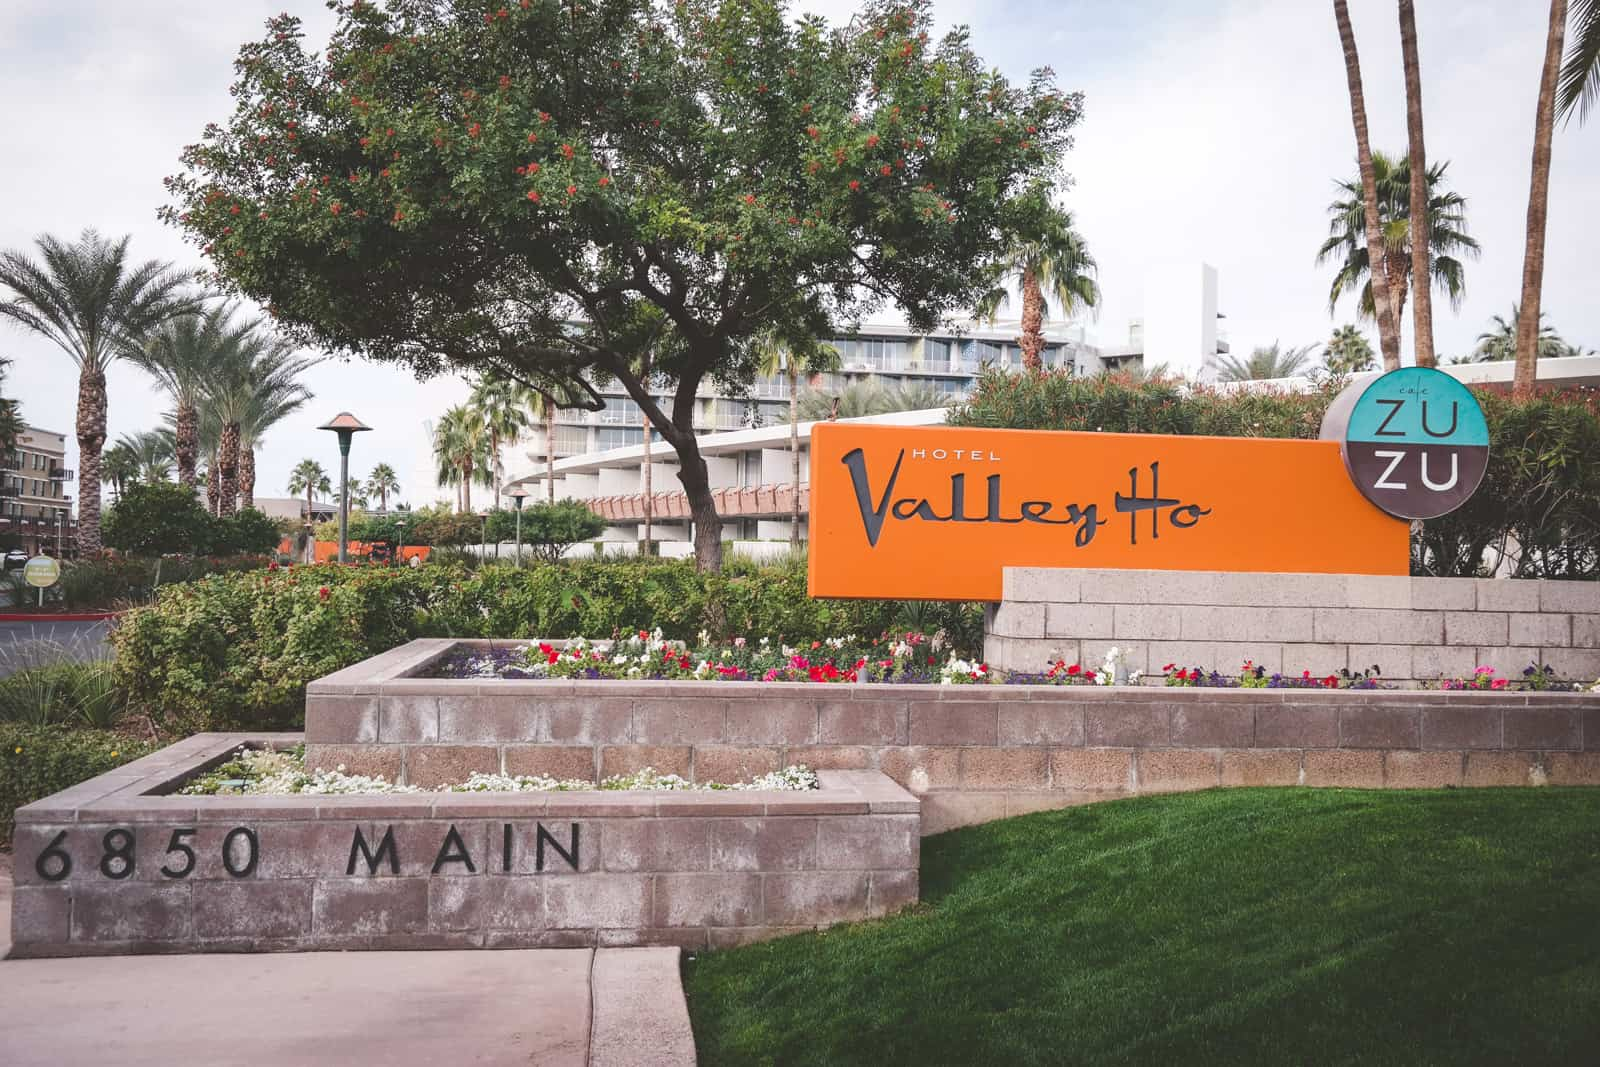 Hotel Valley Ho - where to stay in Scottsdale